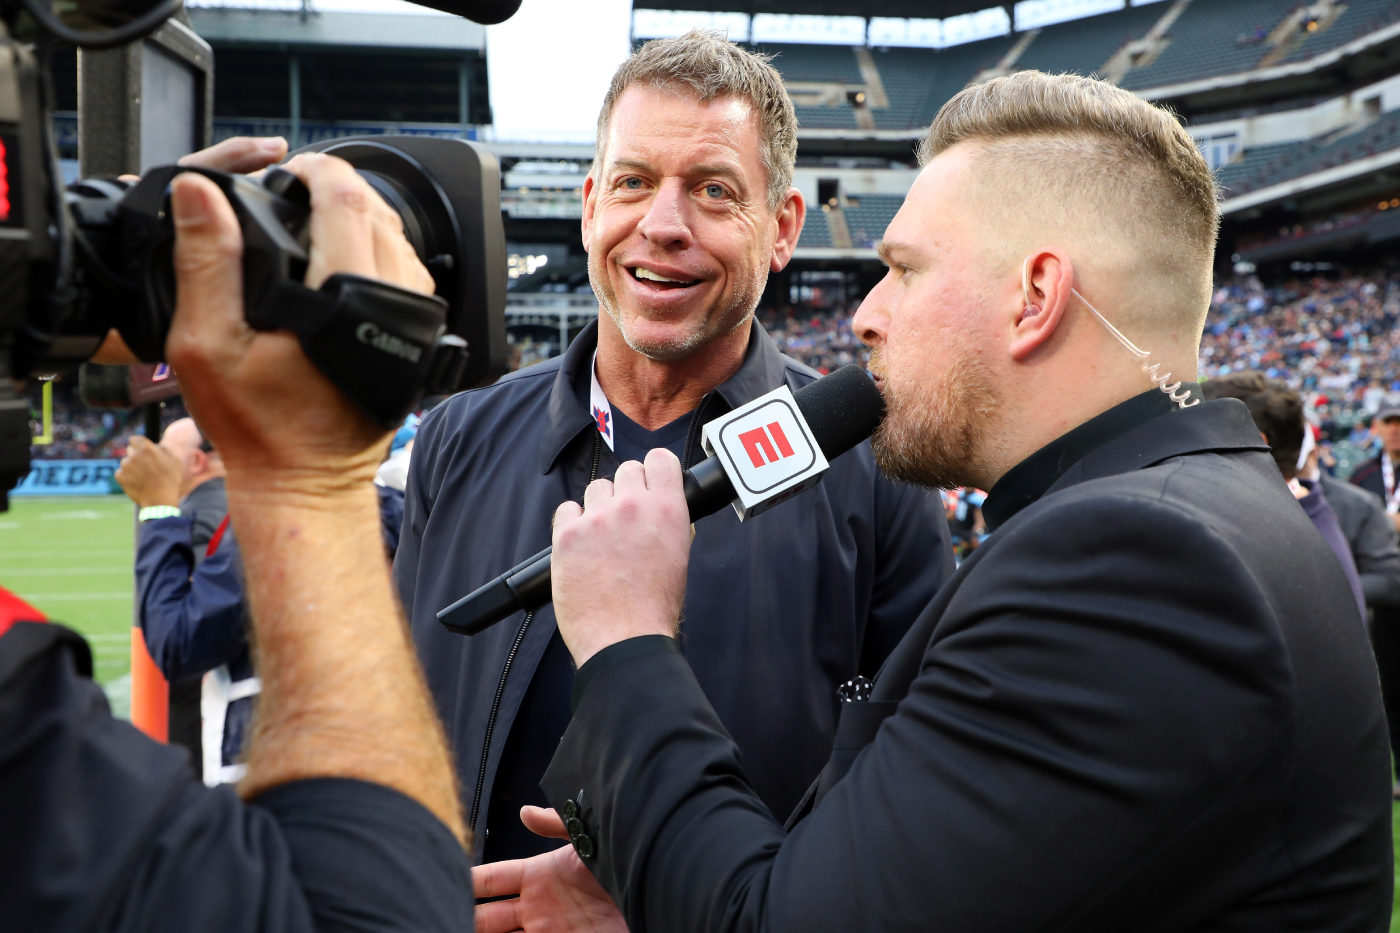 Troy Aikman knows a thing or two about having success with the Dallas Cowboys. However, he recently made some questionable comments.